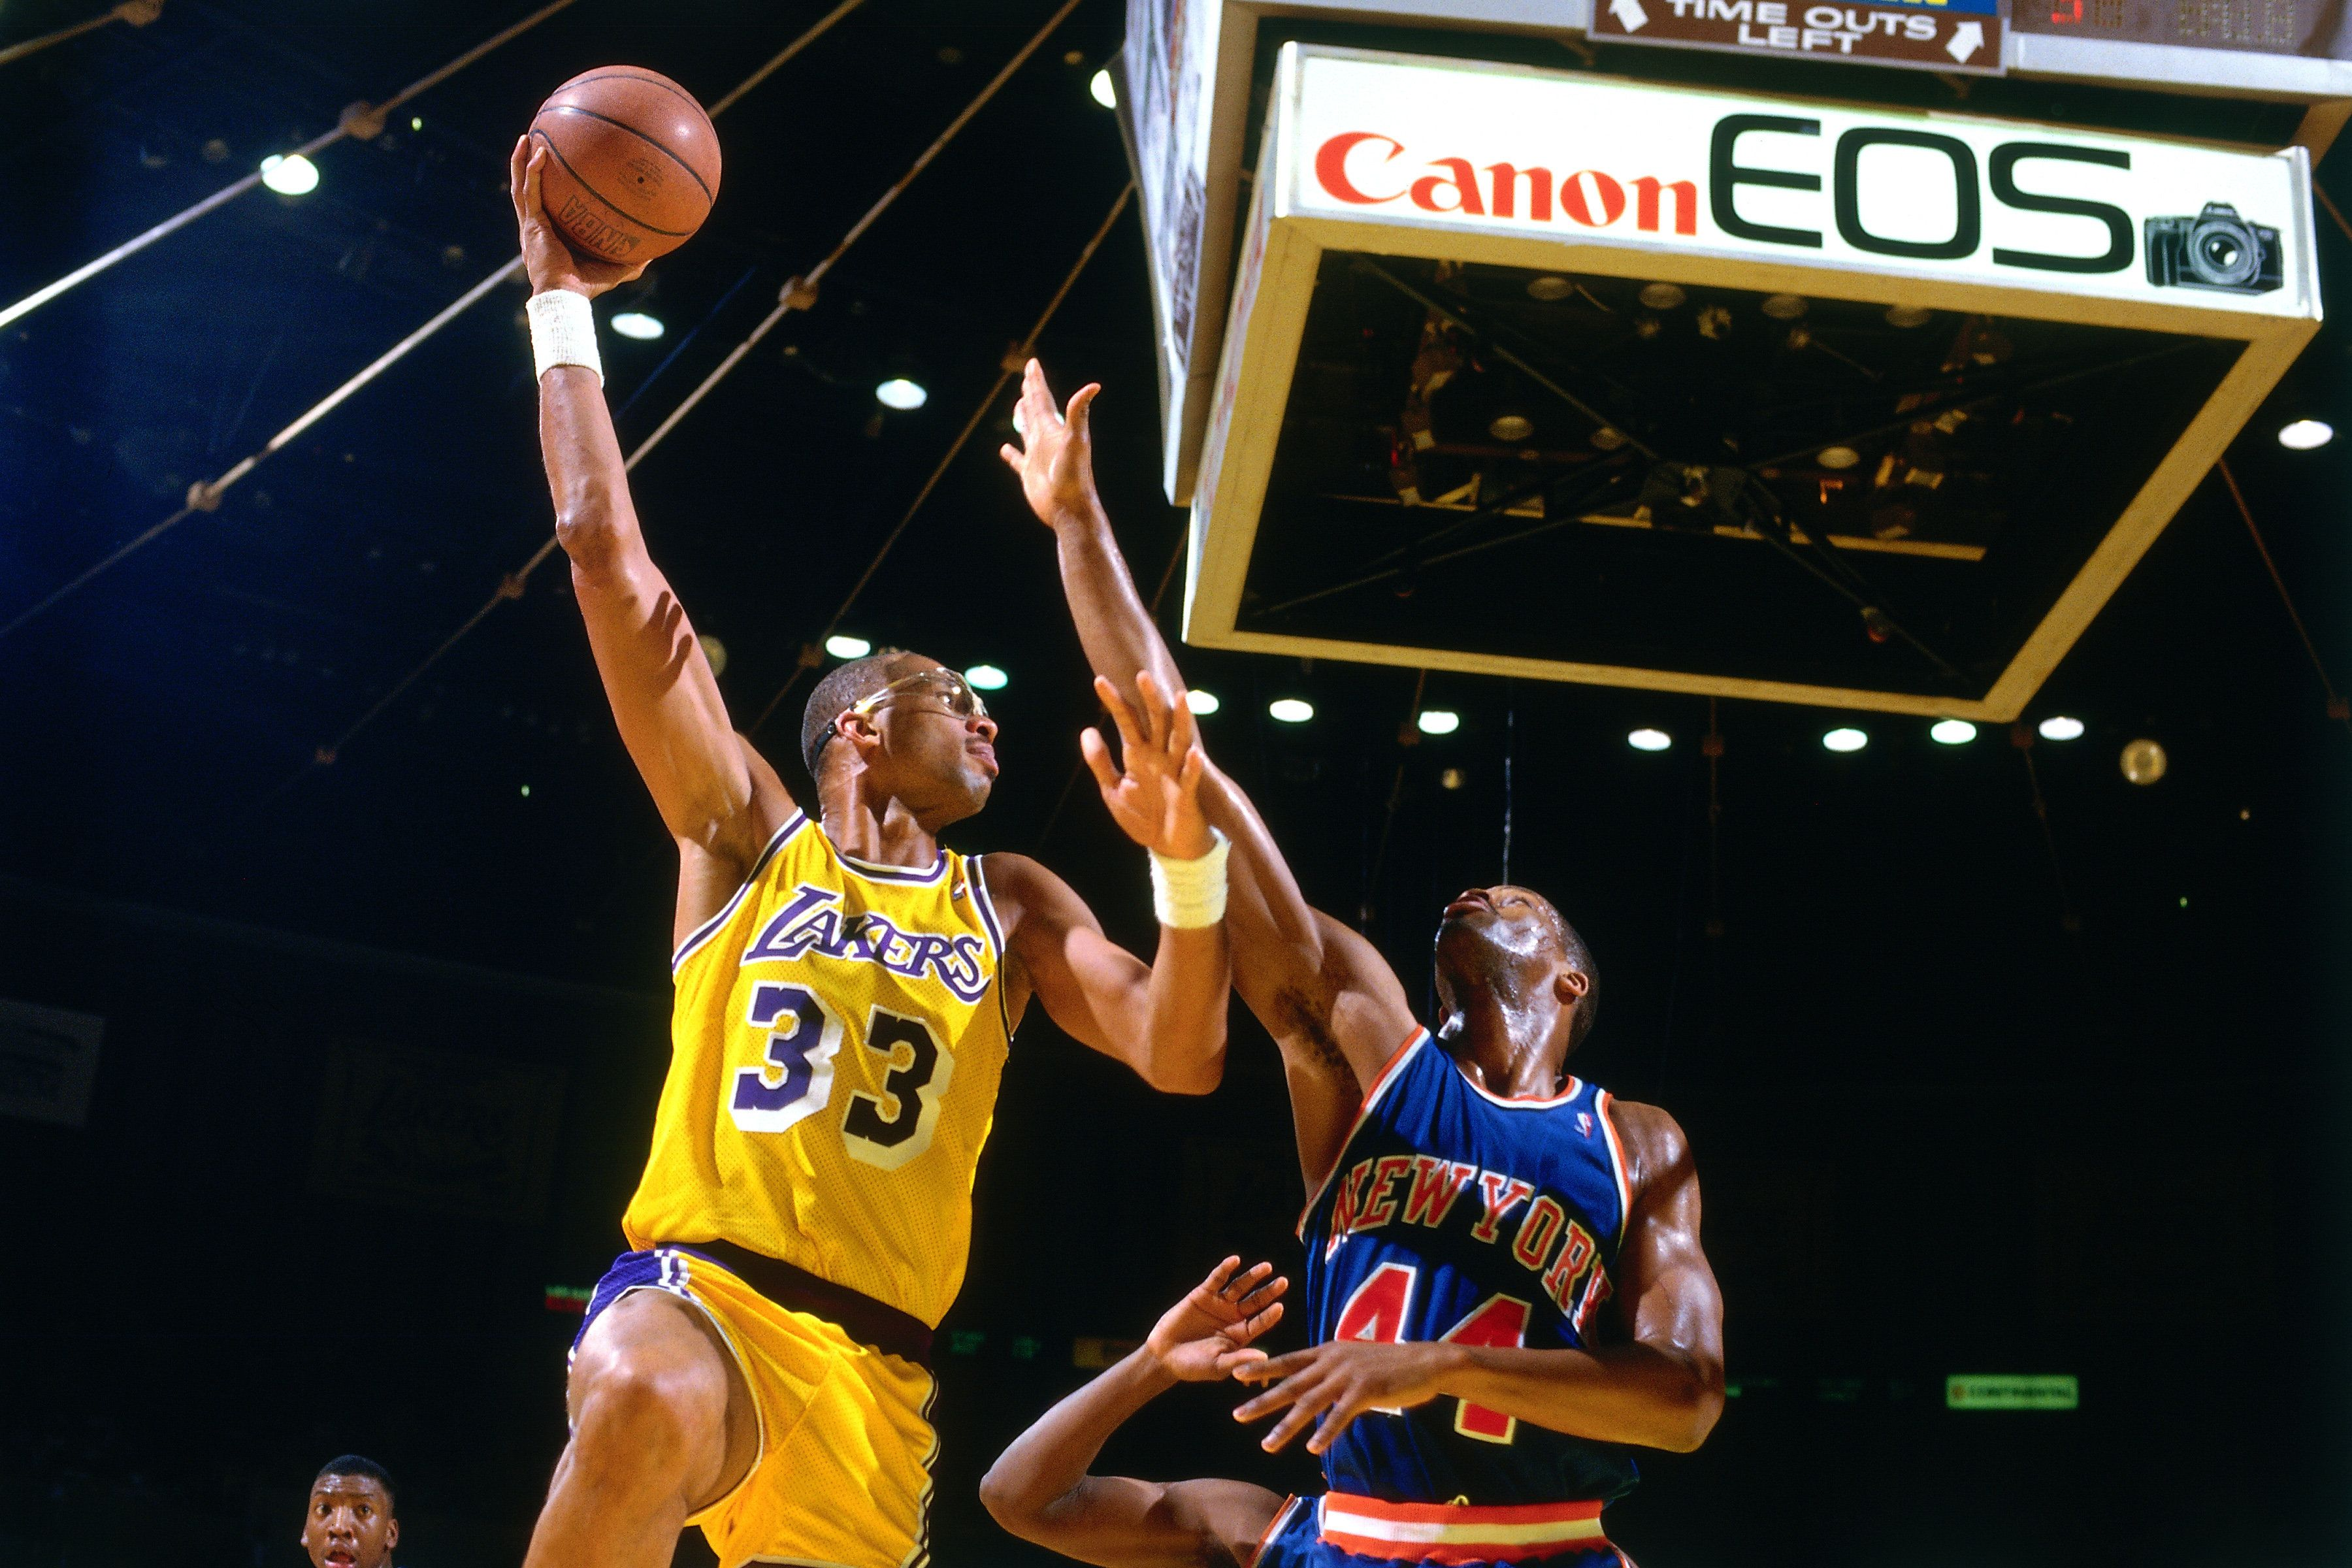 a52a6254133 Why Kareem Abdul-Jabbar just sold a collection featuring 4 Lakers ...